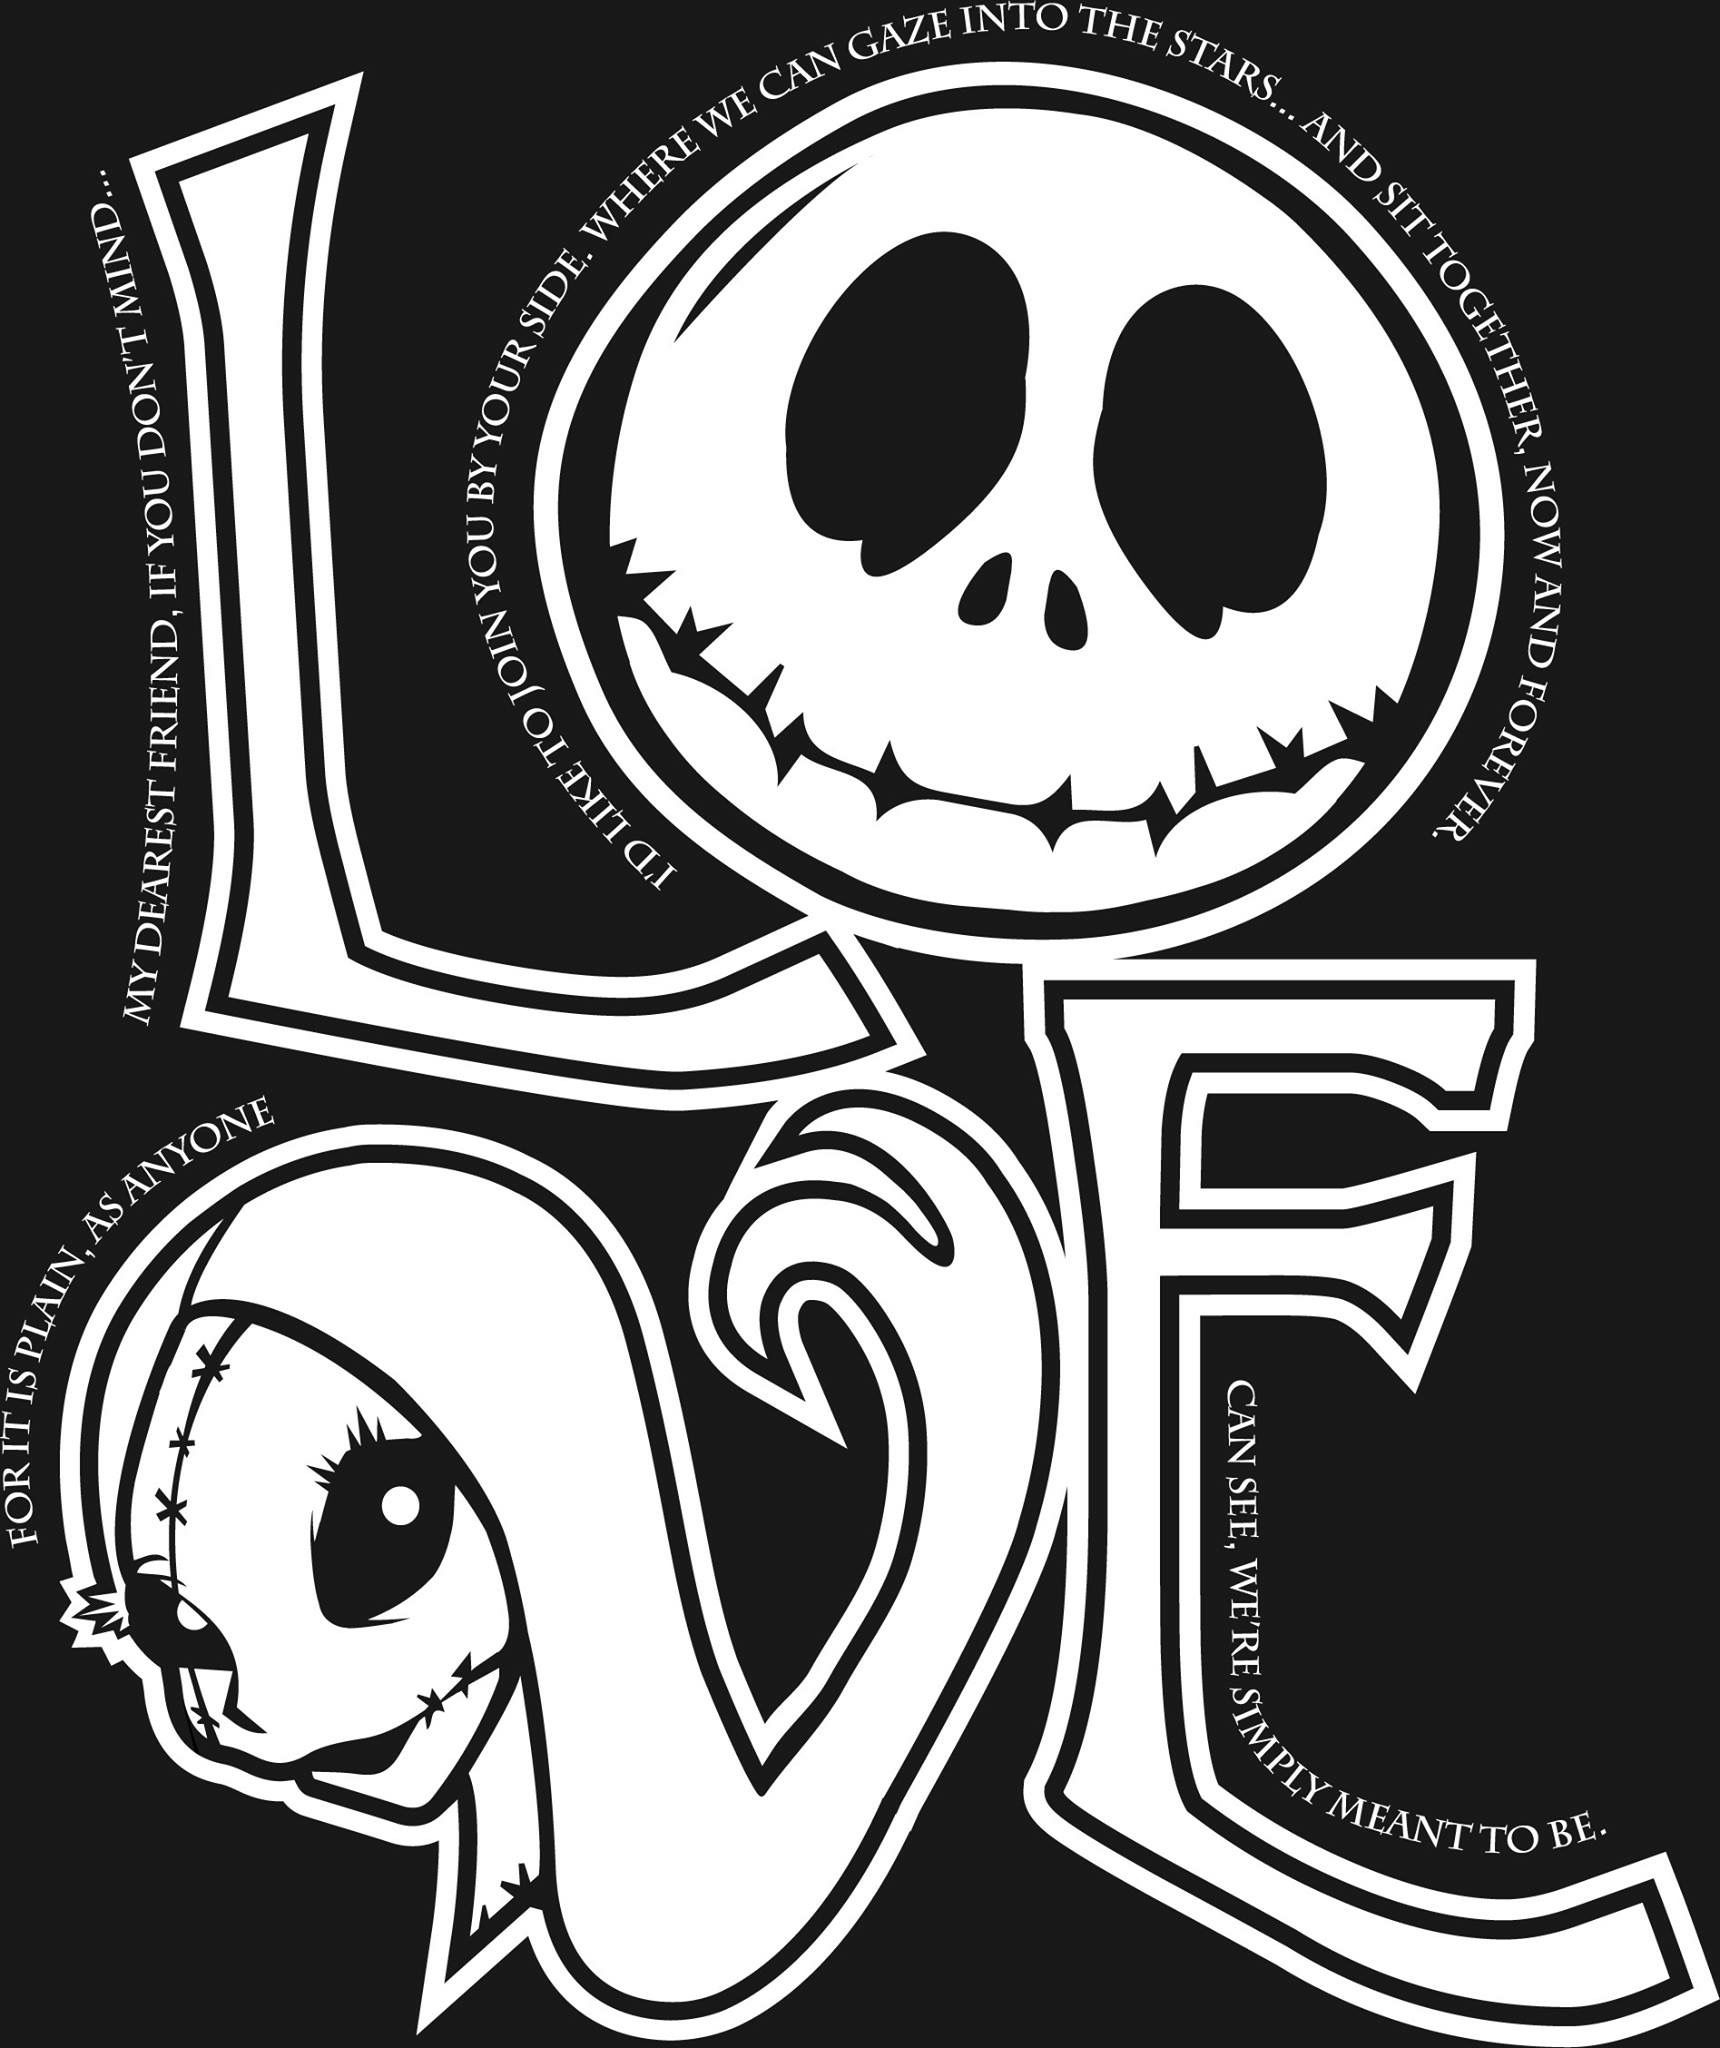 Pin by Emily Stout on font in 2020 Nightmare before